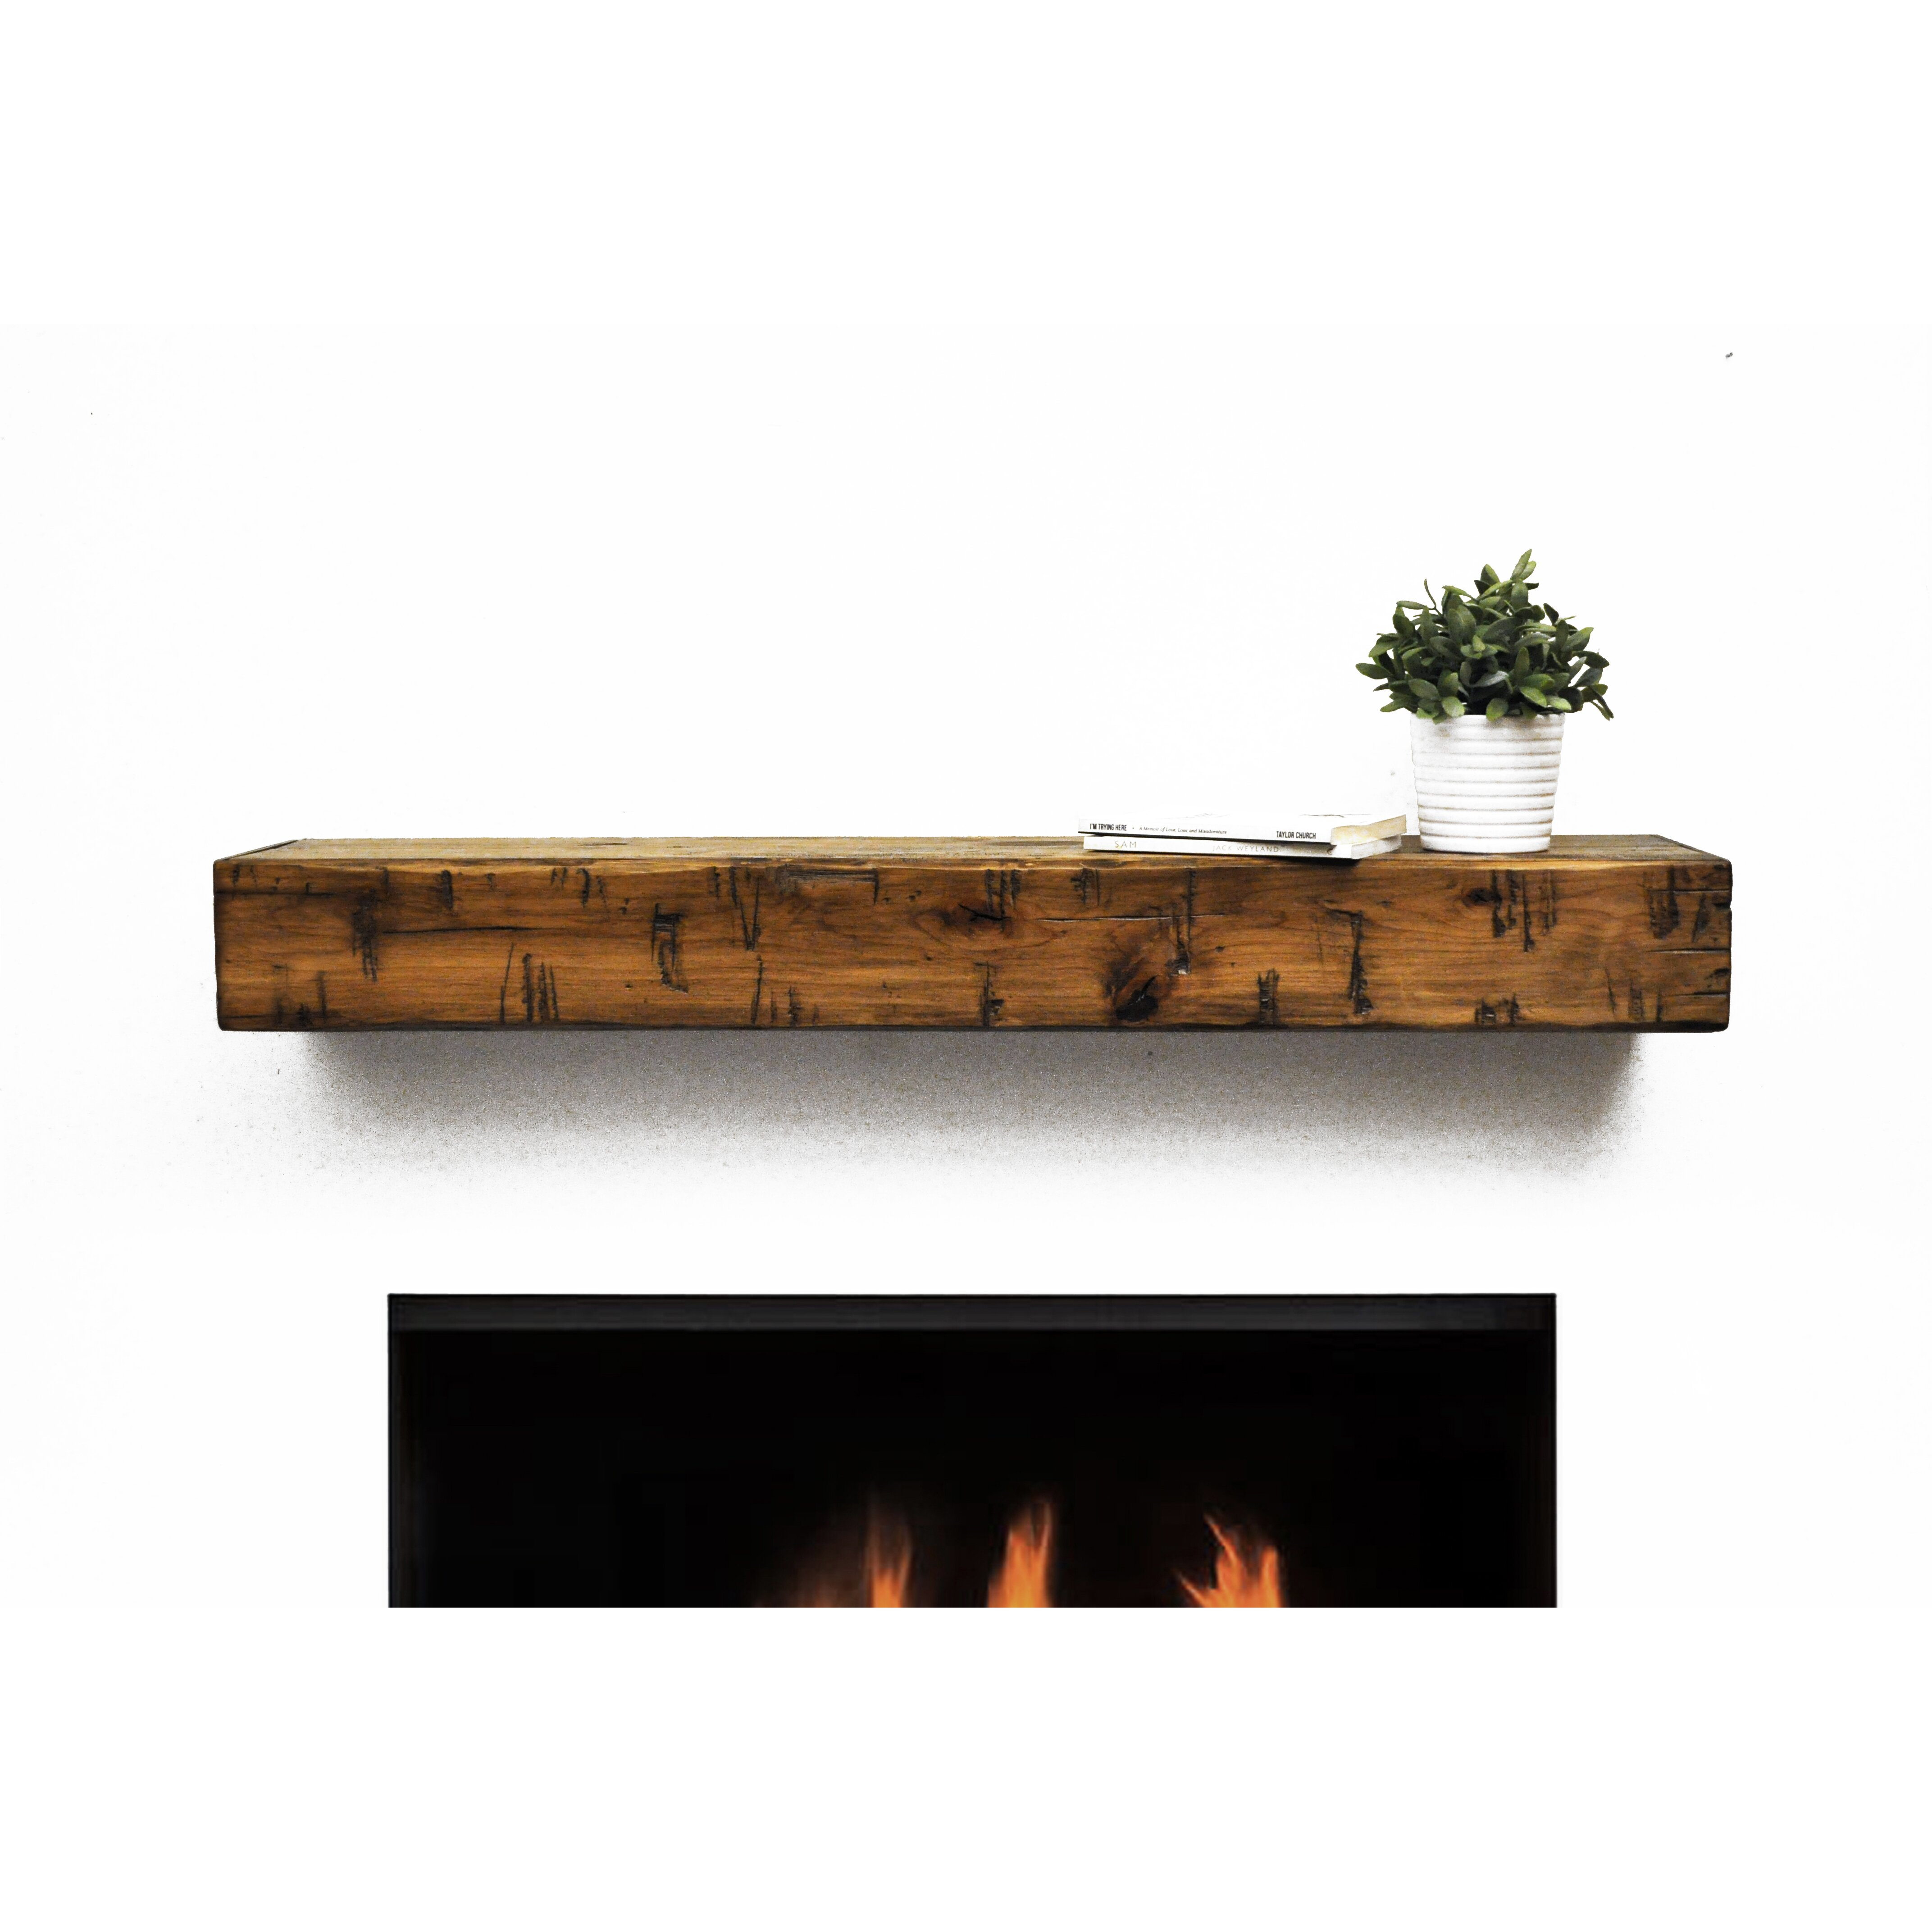 Floating Farmhouse Dogberry Collections Rustic Fireplace Mantel Shelf